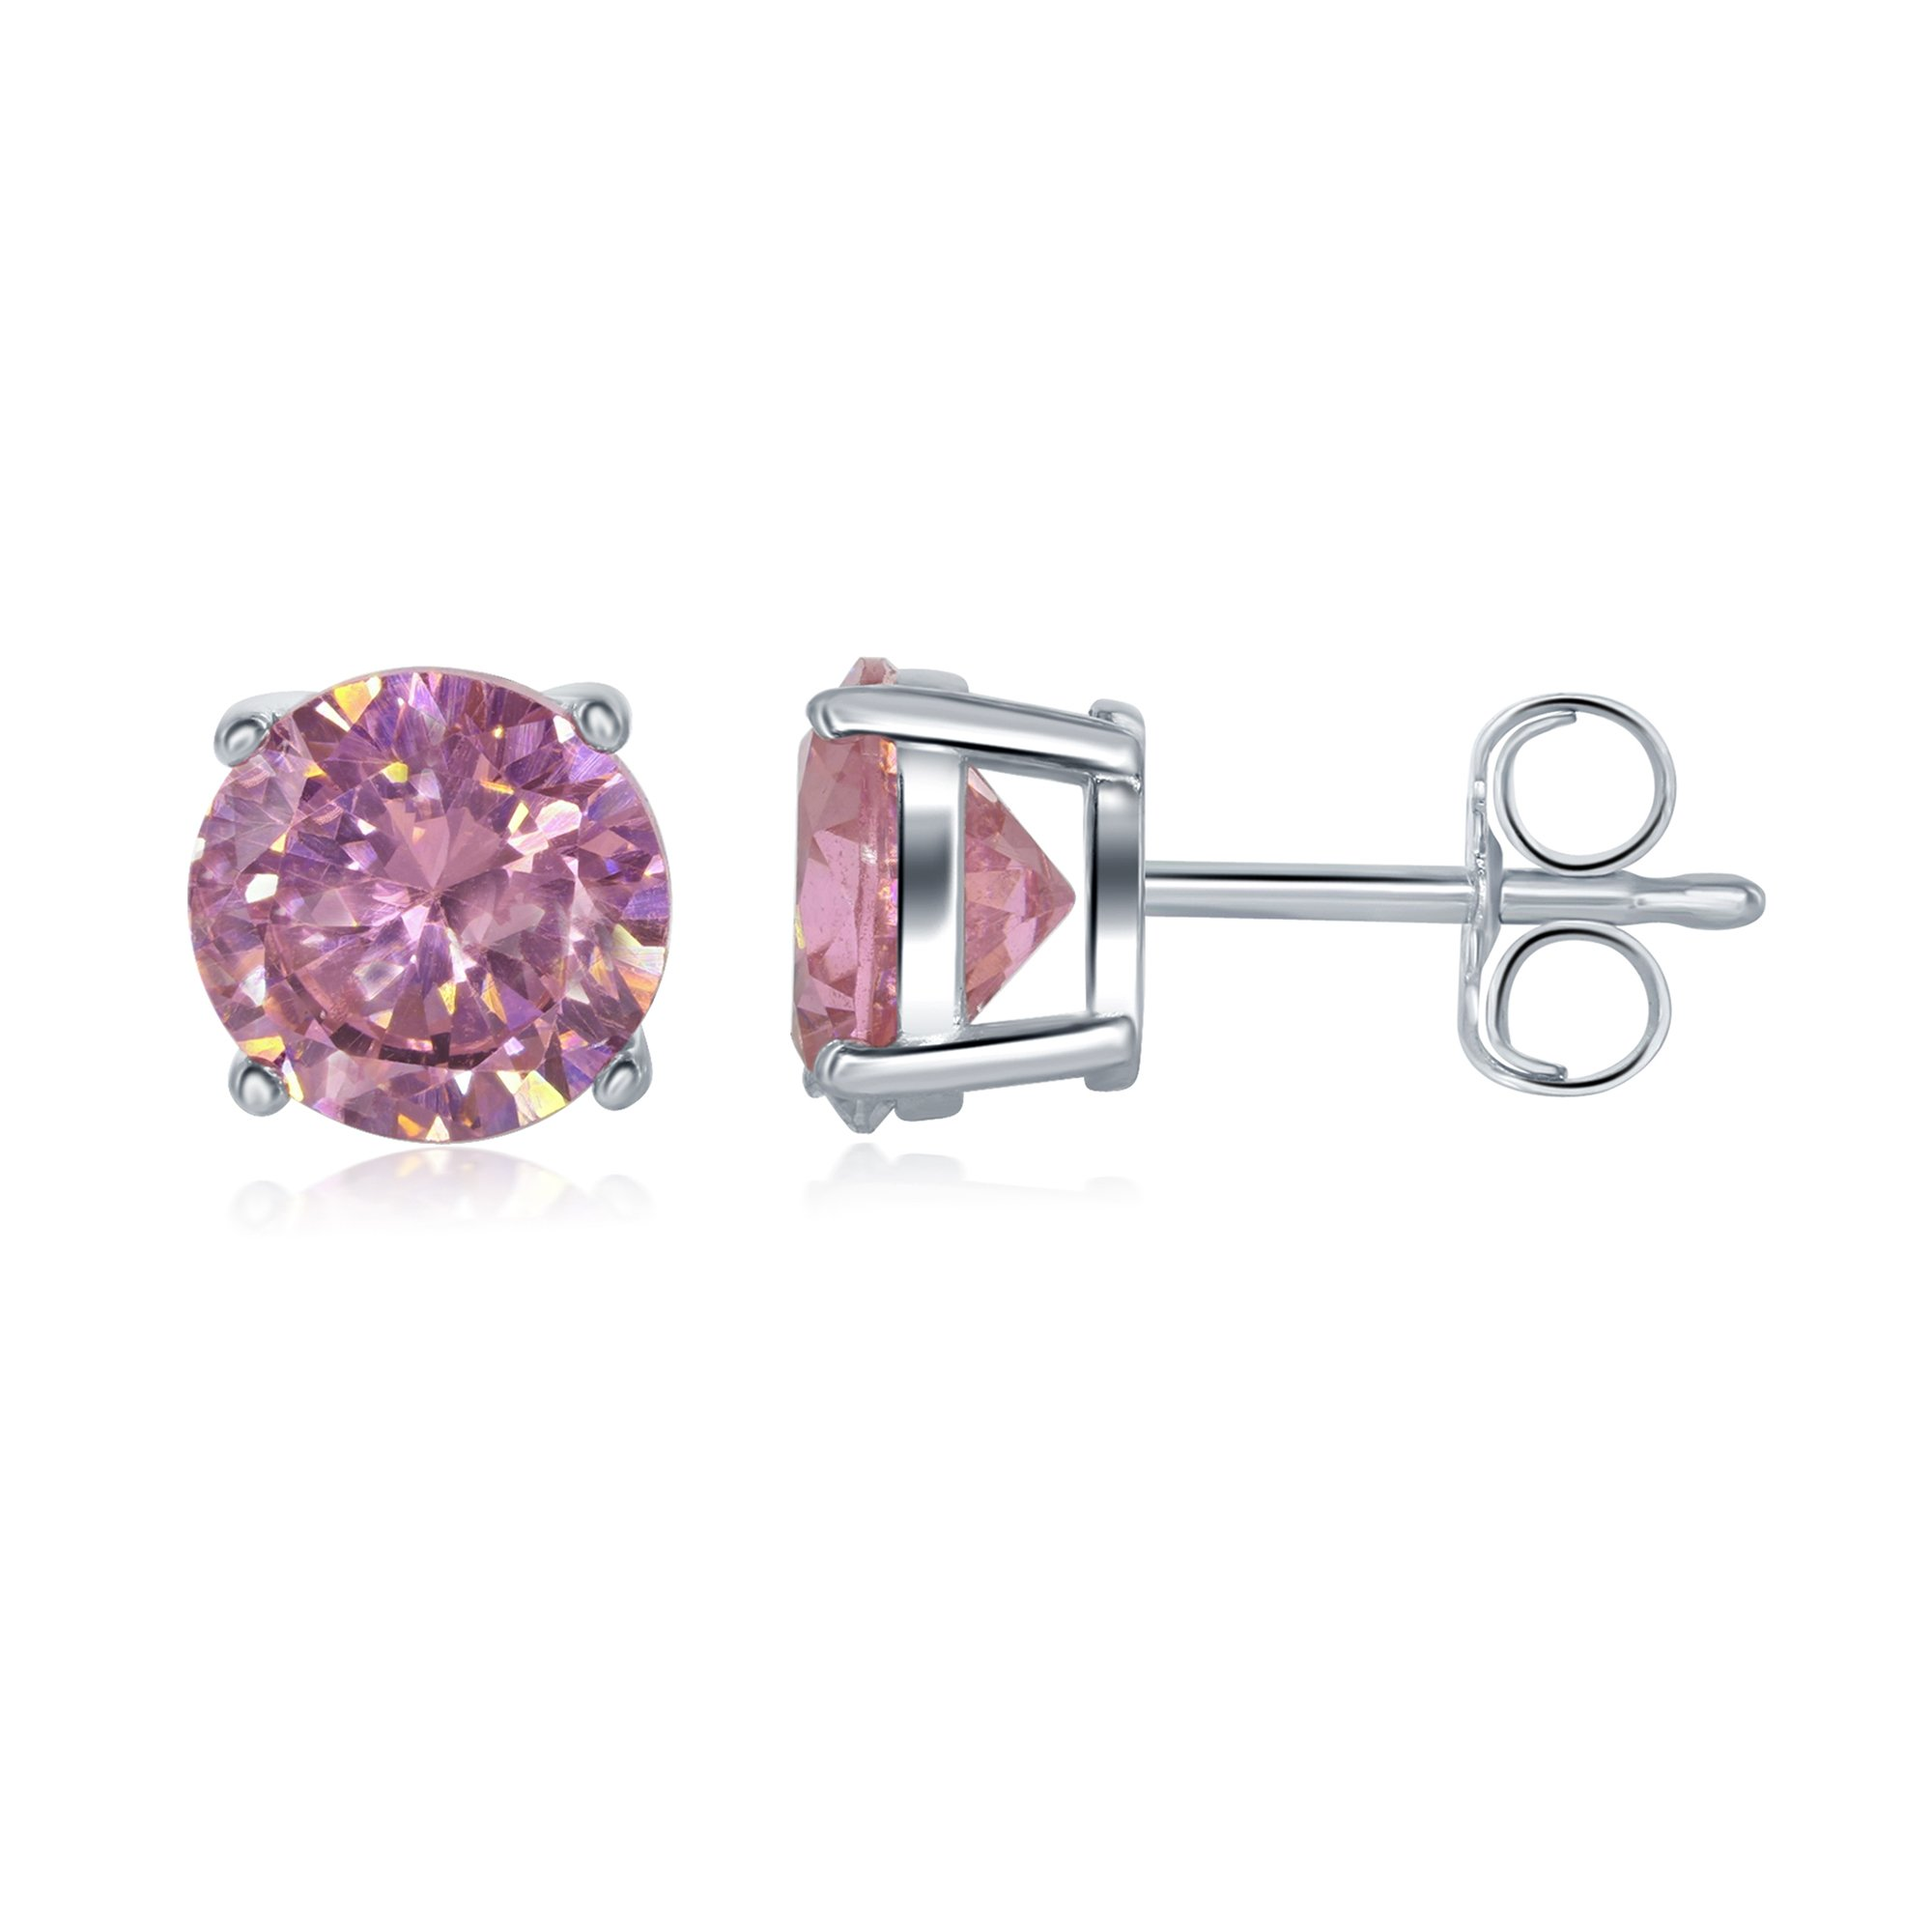 925 Sterling Silver Cubic Zirconia CZ Stud Earrings for Men Women Girls and Babies Butterfly Pushbacks Many Styles/Sizes Available (Pink Cz Stud 6mm)